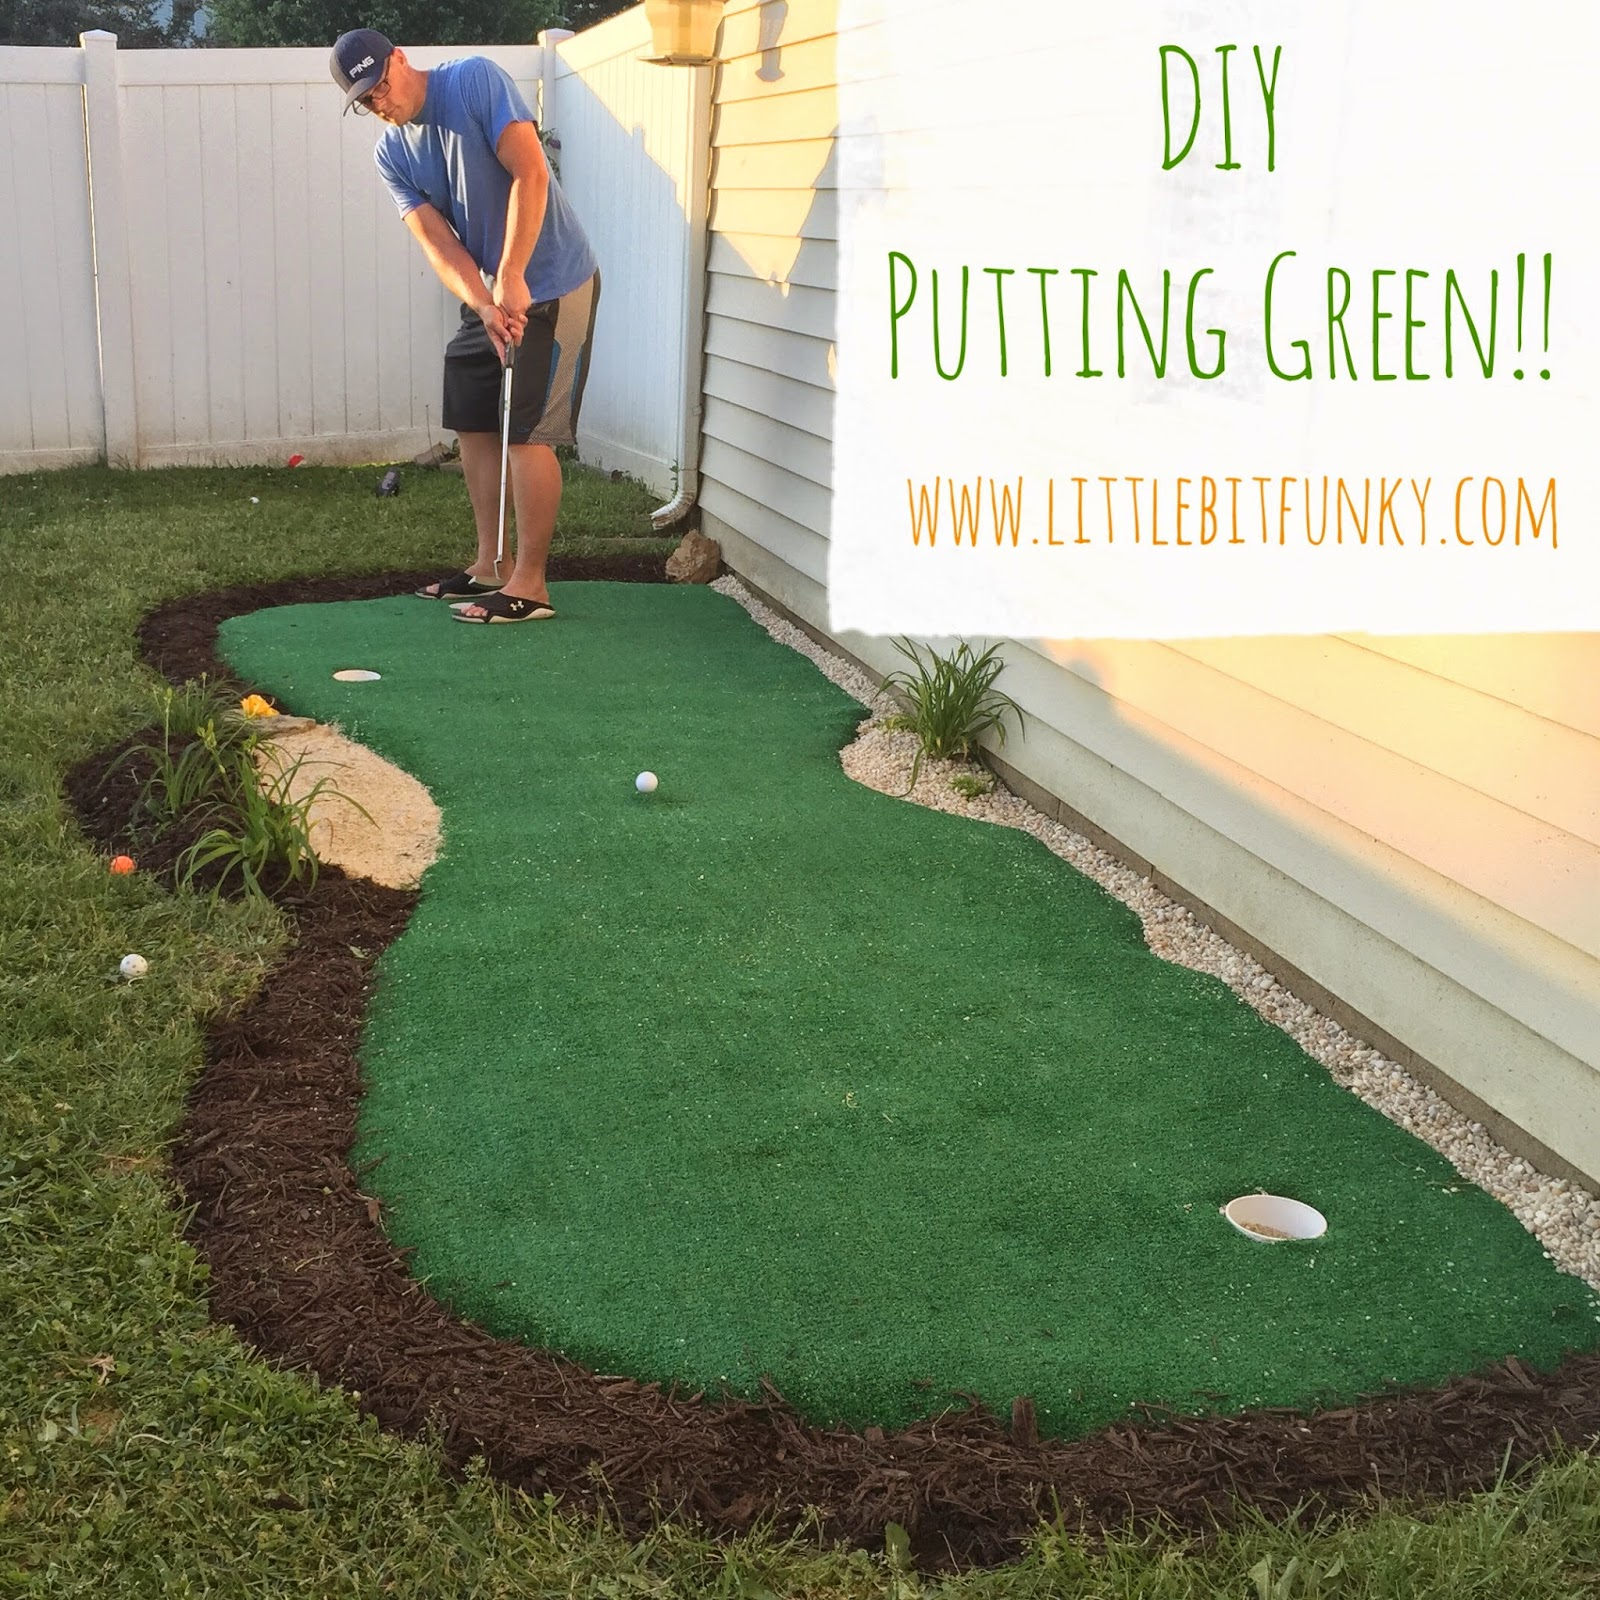 Little bit funky how to make a backyard putting green for How to make house green